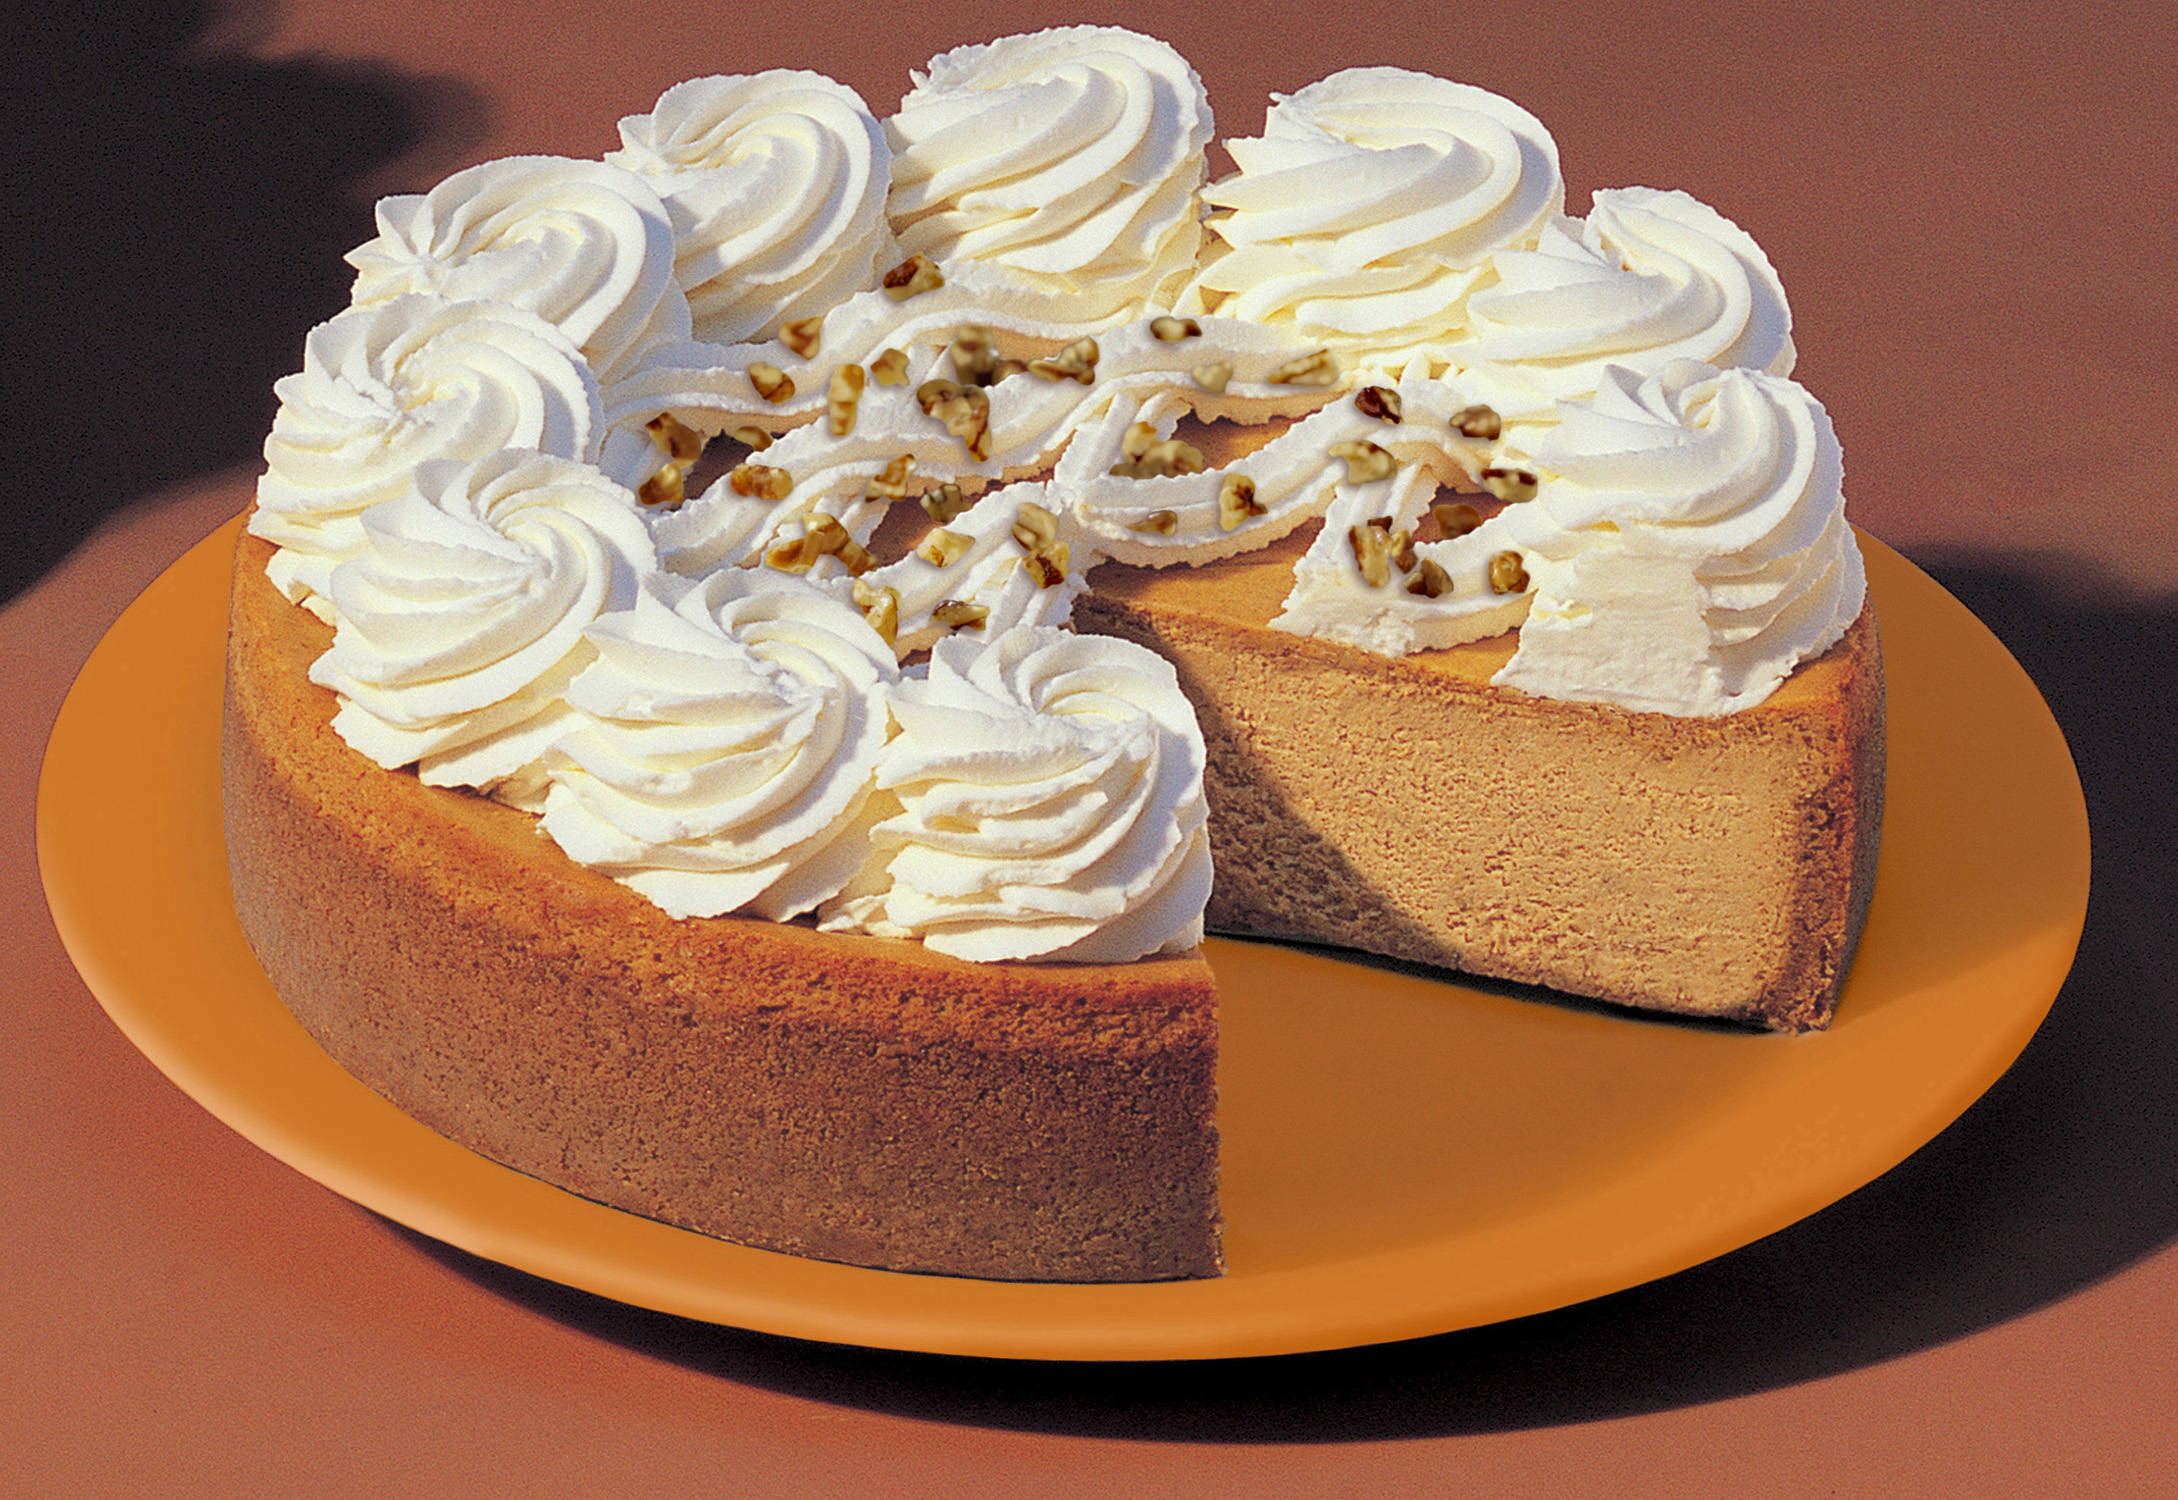 The Cheesecake Factory Pumpkin Cheesecake Chef Pablo 39 S Recipeschef Pablo 39 S Recipes